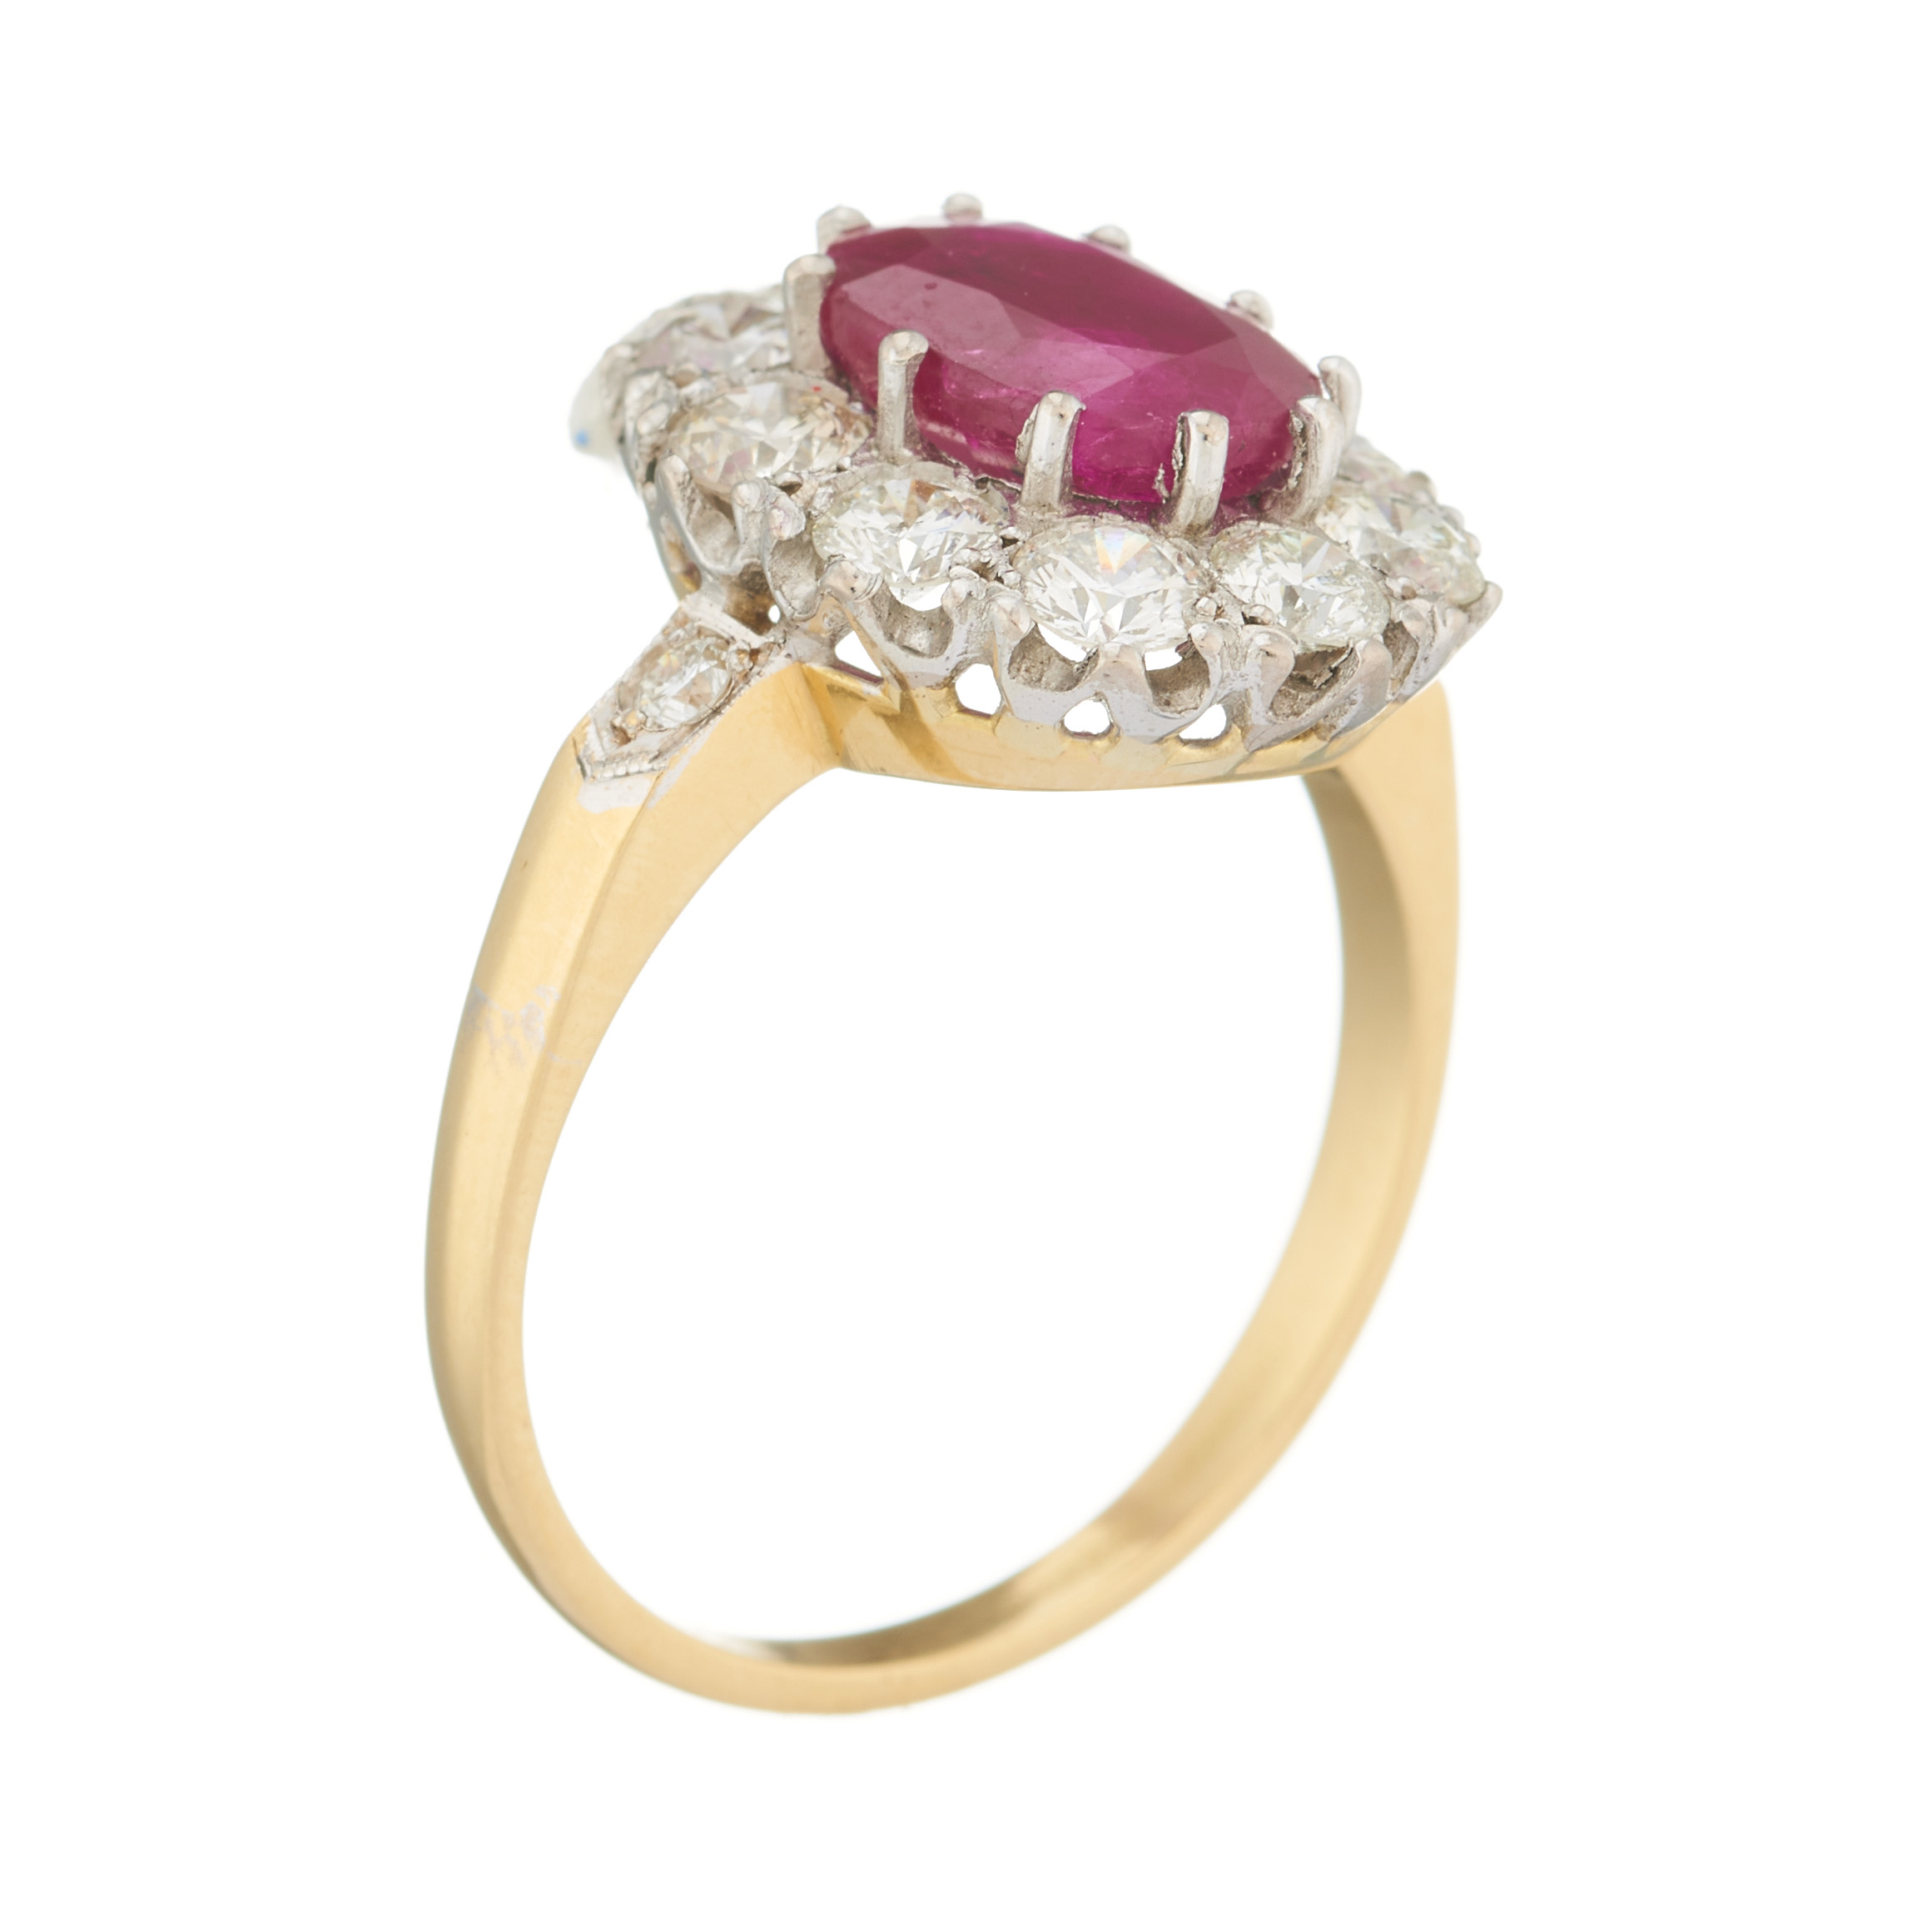 An 18ct gold ruby and diamond cluster ring - Image 2 of 2